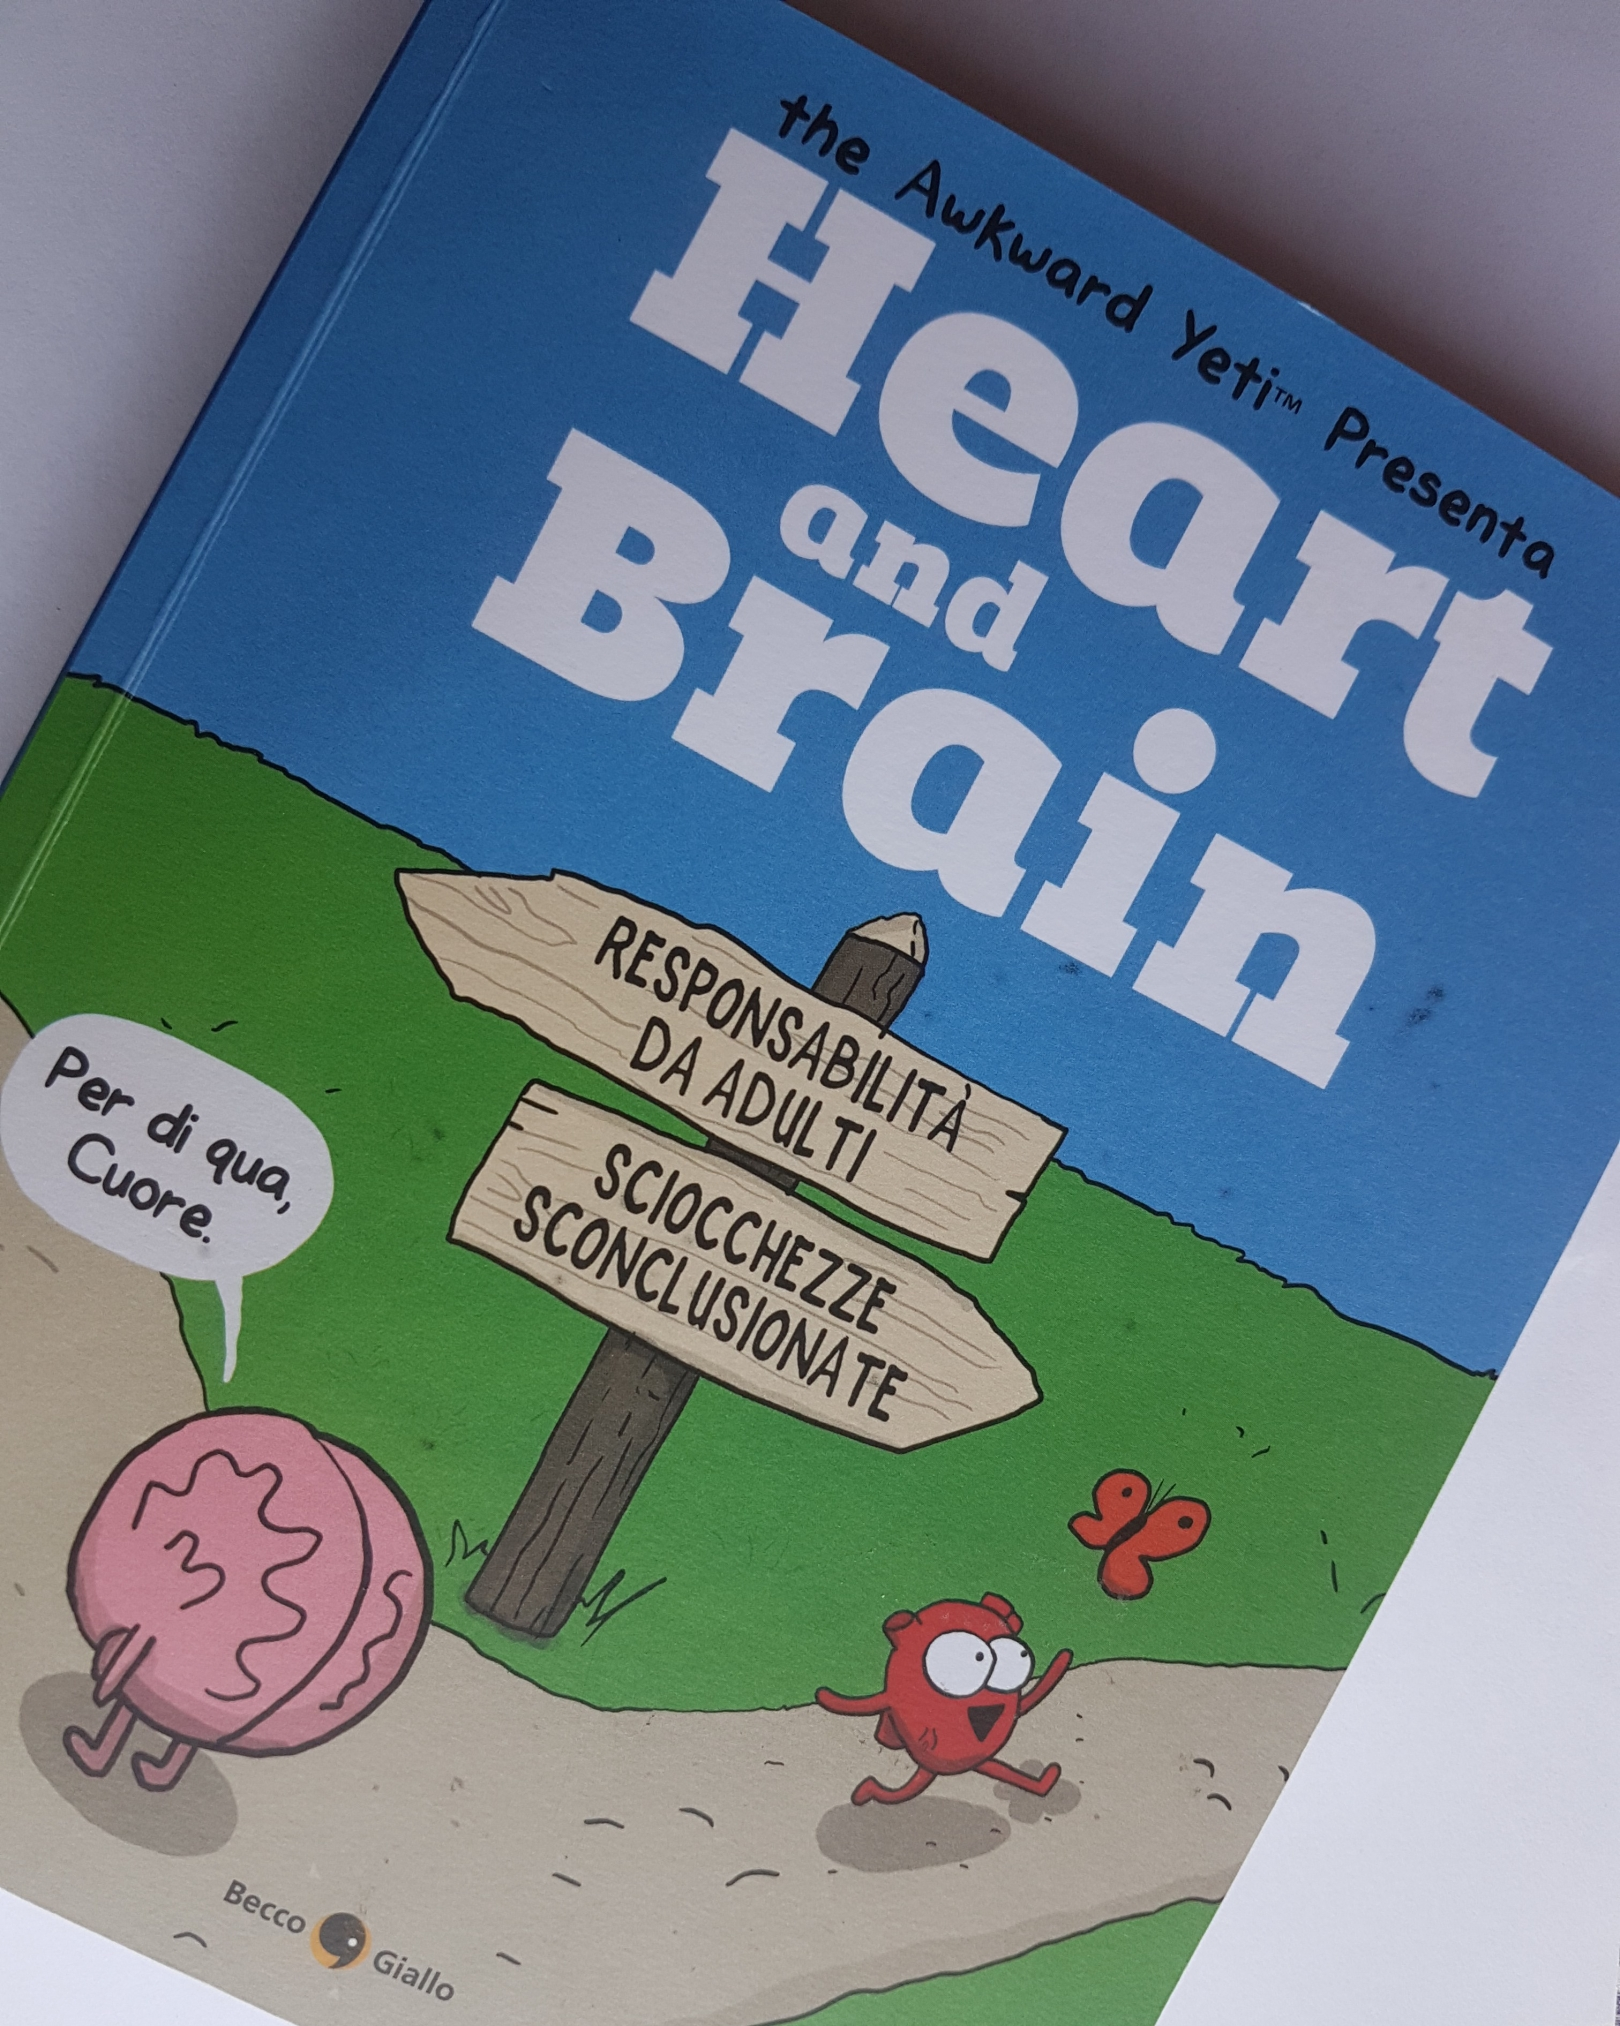 Heart and Brain - Roa Rivista Online d'Avanguardia